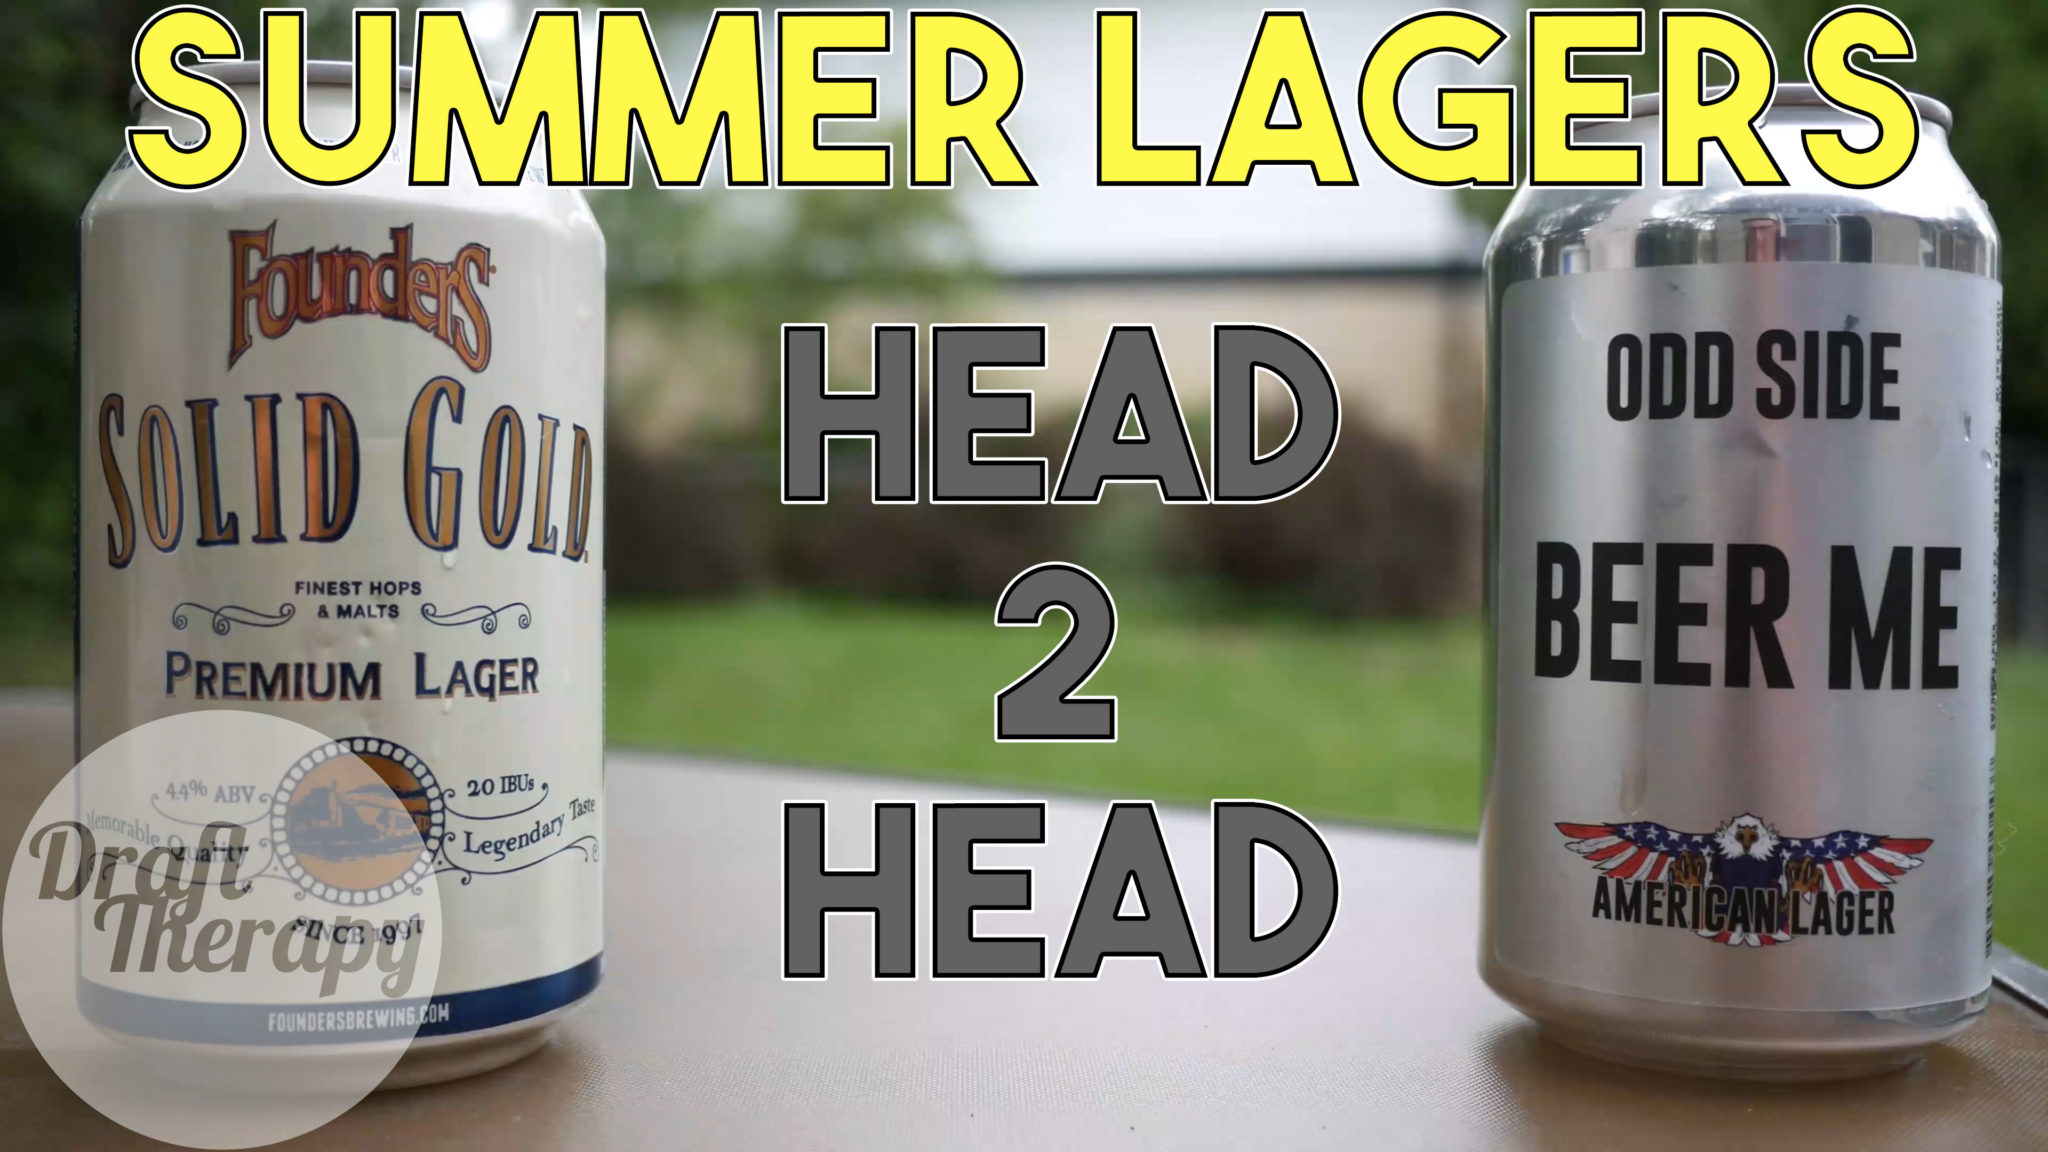 Head 2 Head – Founders Solid Gold vs Odd Side's Beer Me